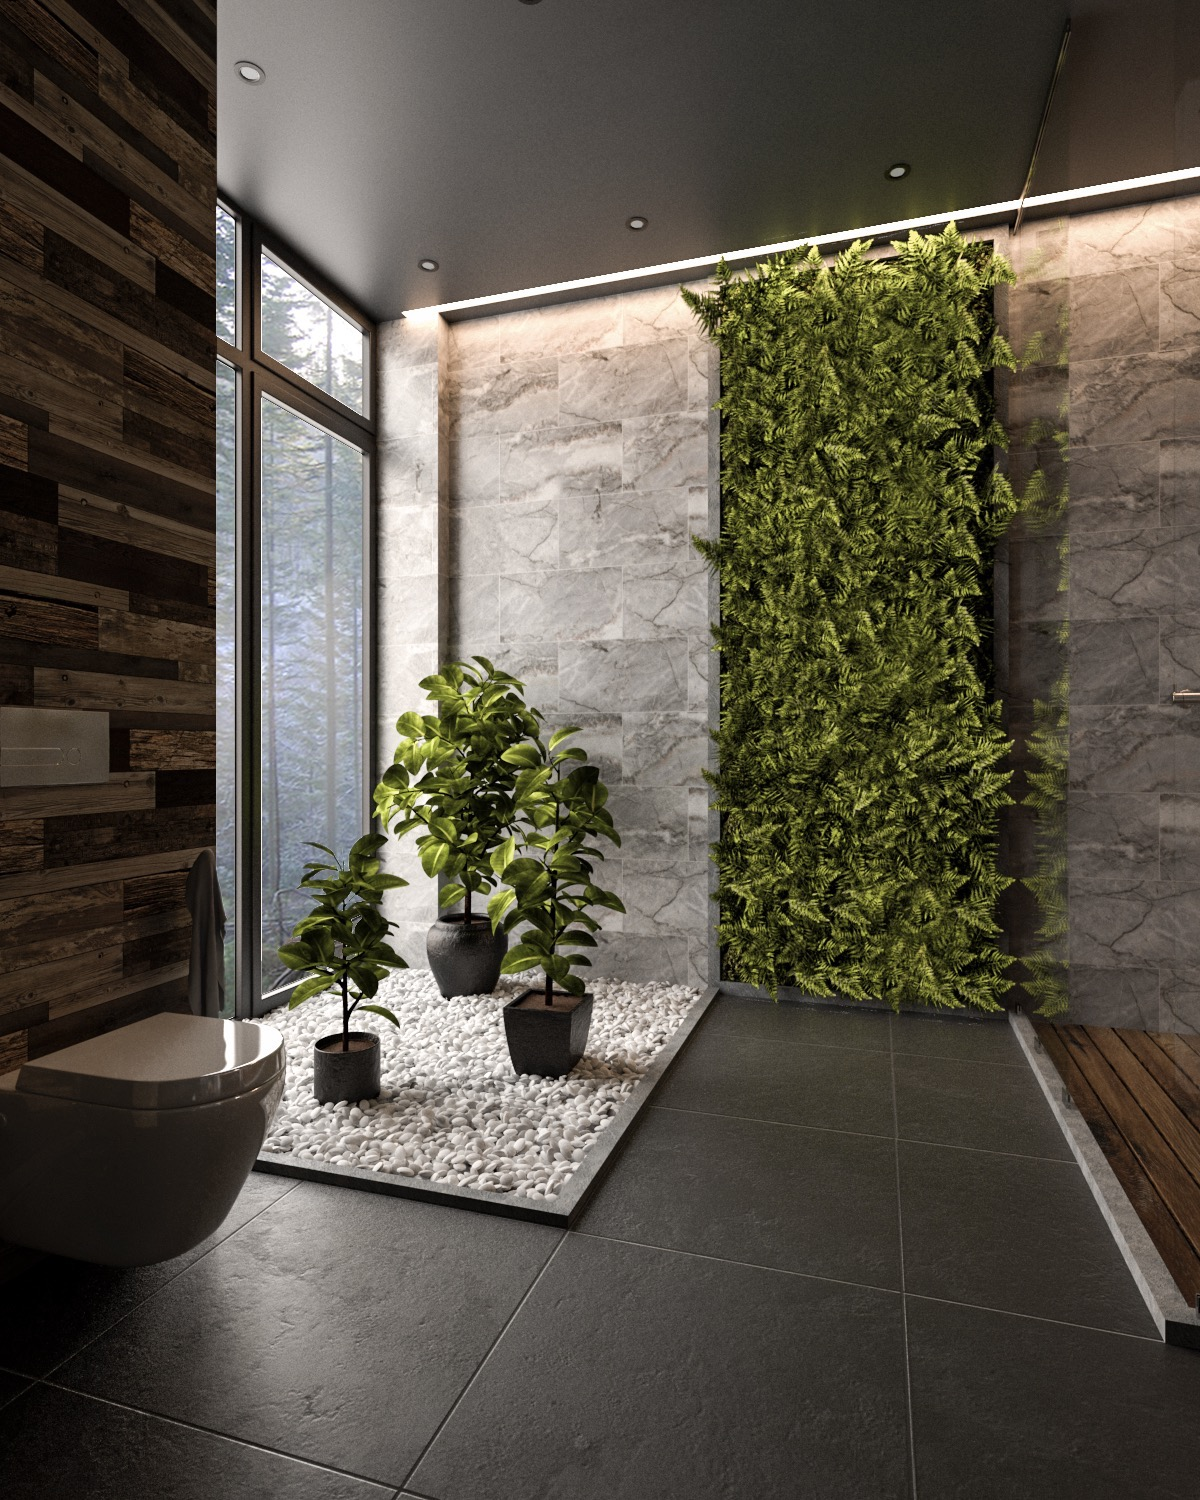 36 Modern Grey & White Bathrooms That Relax Mind Body & Soul images 24